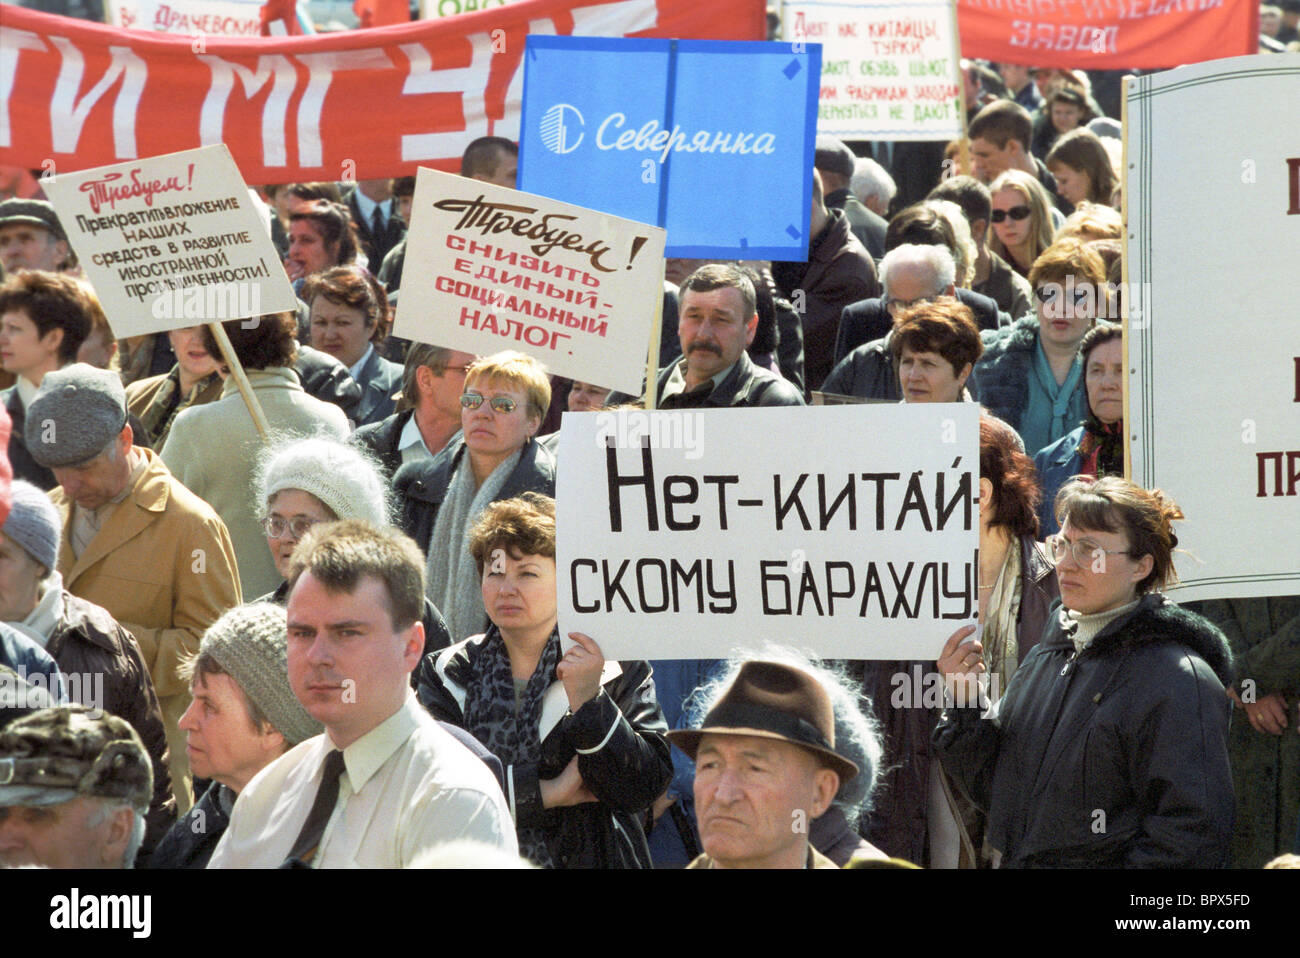 Protest action against import of contraband, 2002 - Stock Image